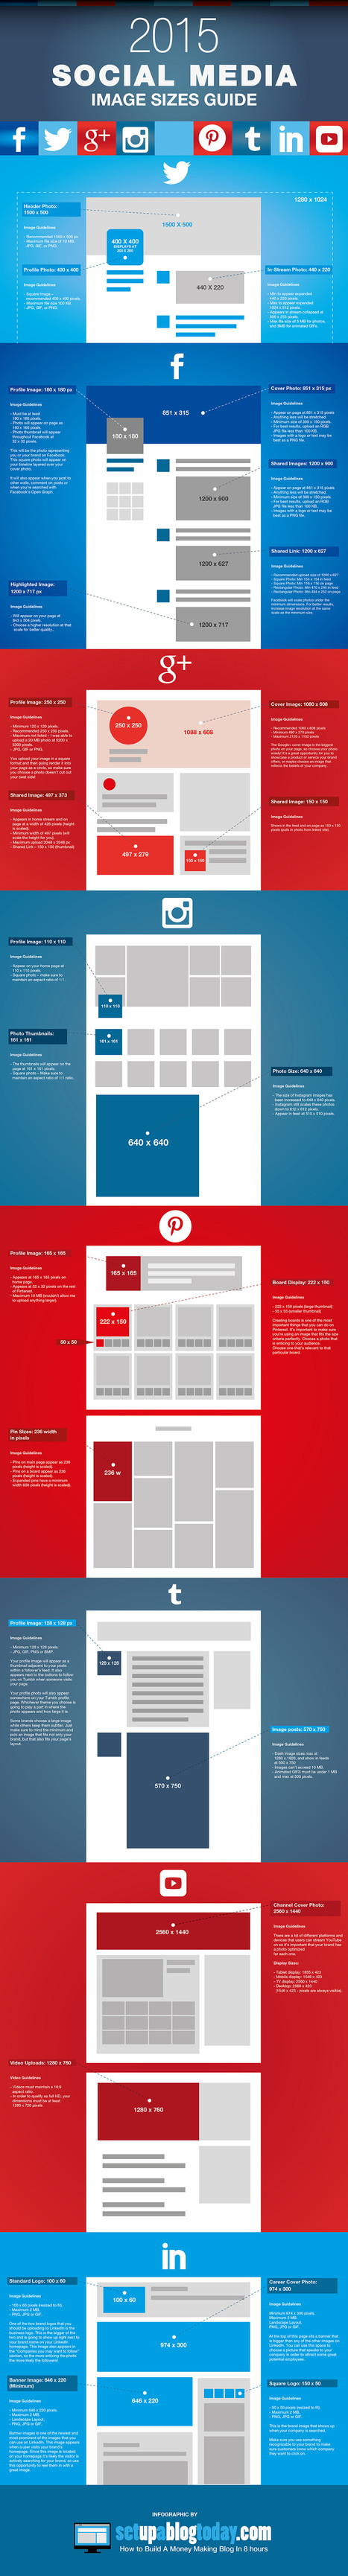 The Complete Guide to Social Media Image Sizes: 2015 (infographic) | African media futures | Scoop.it